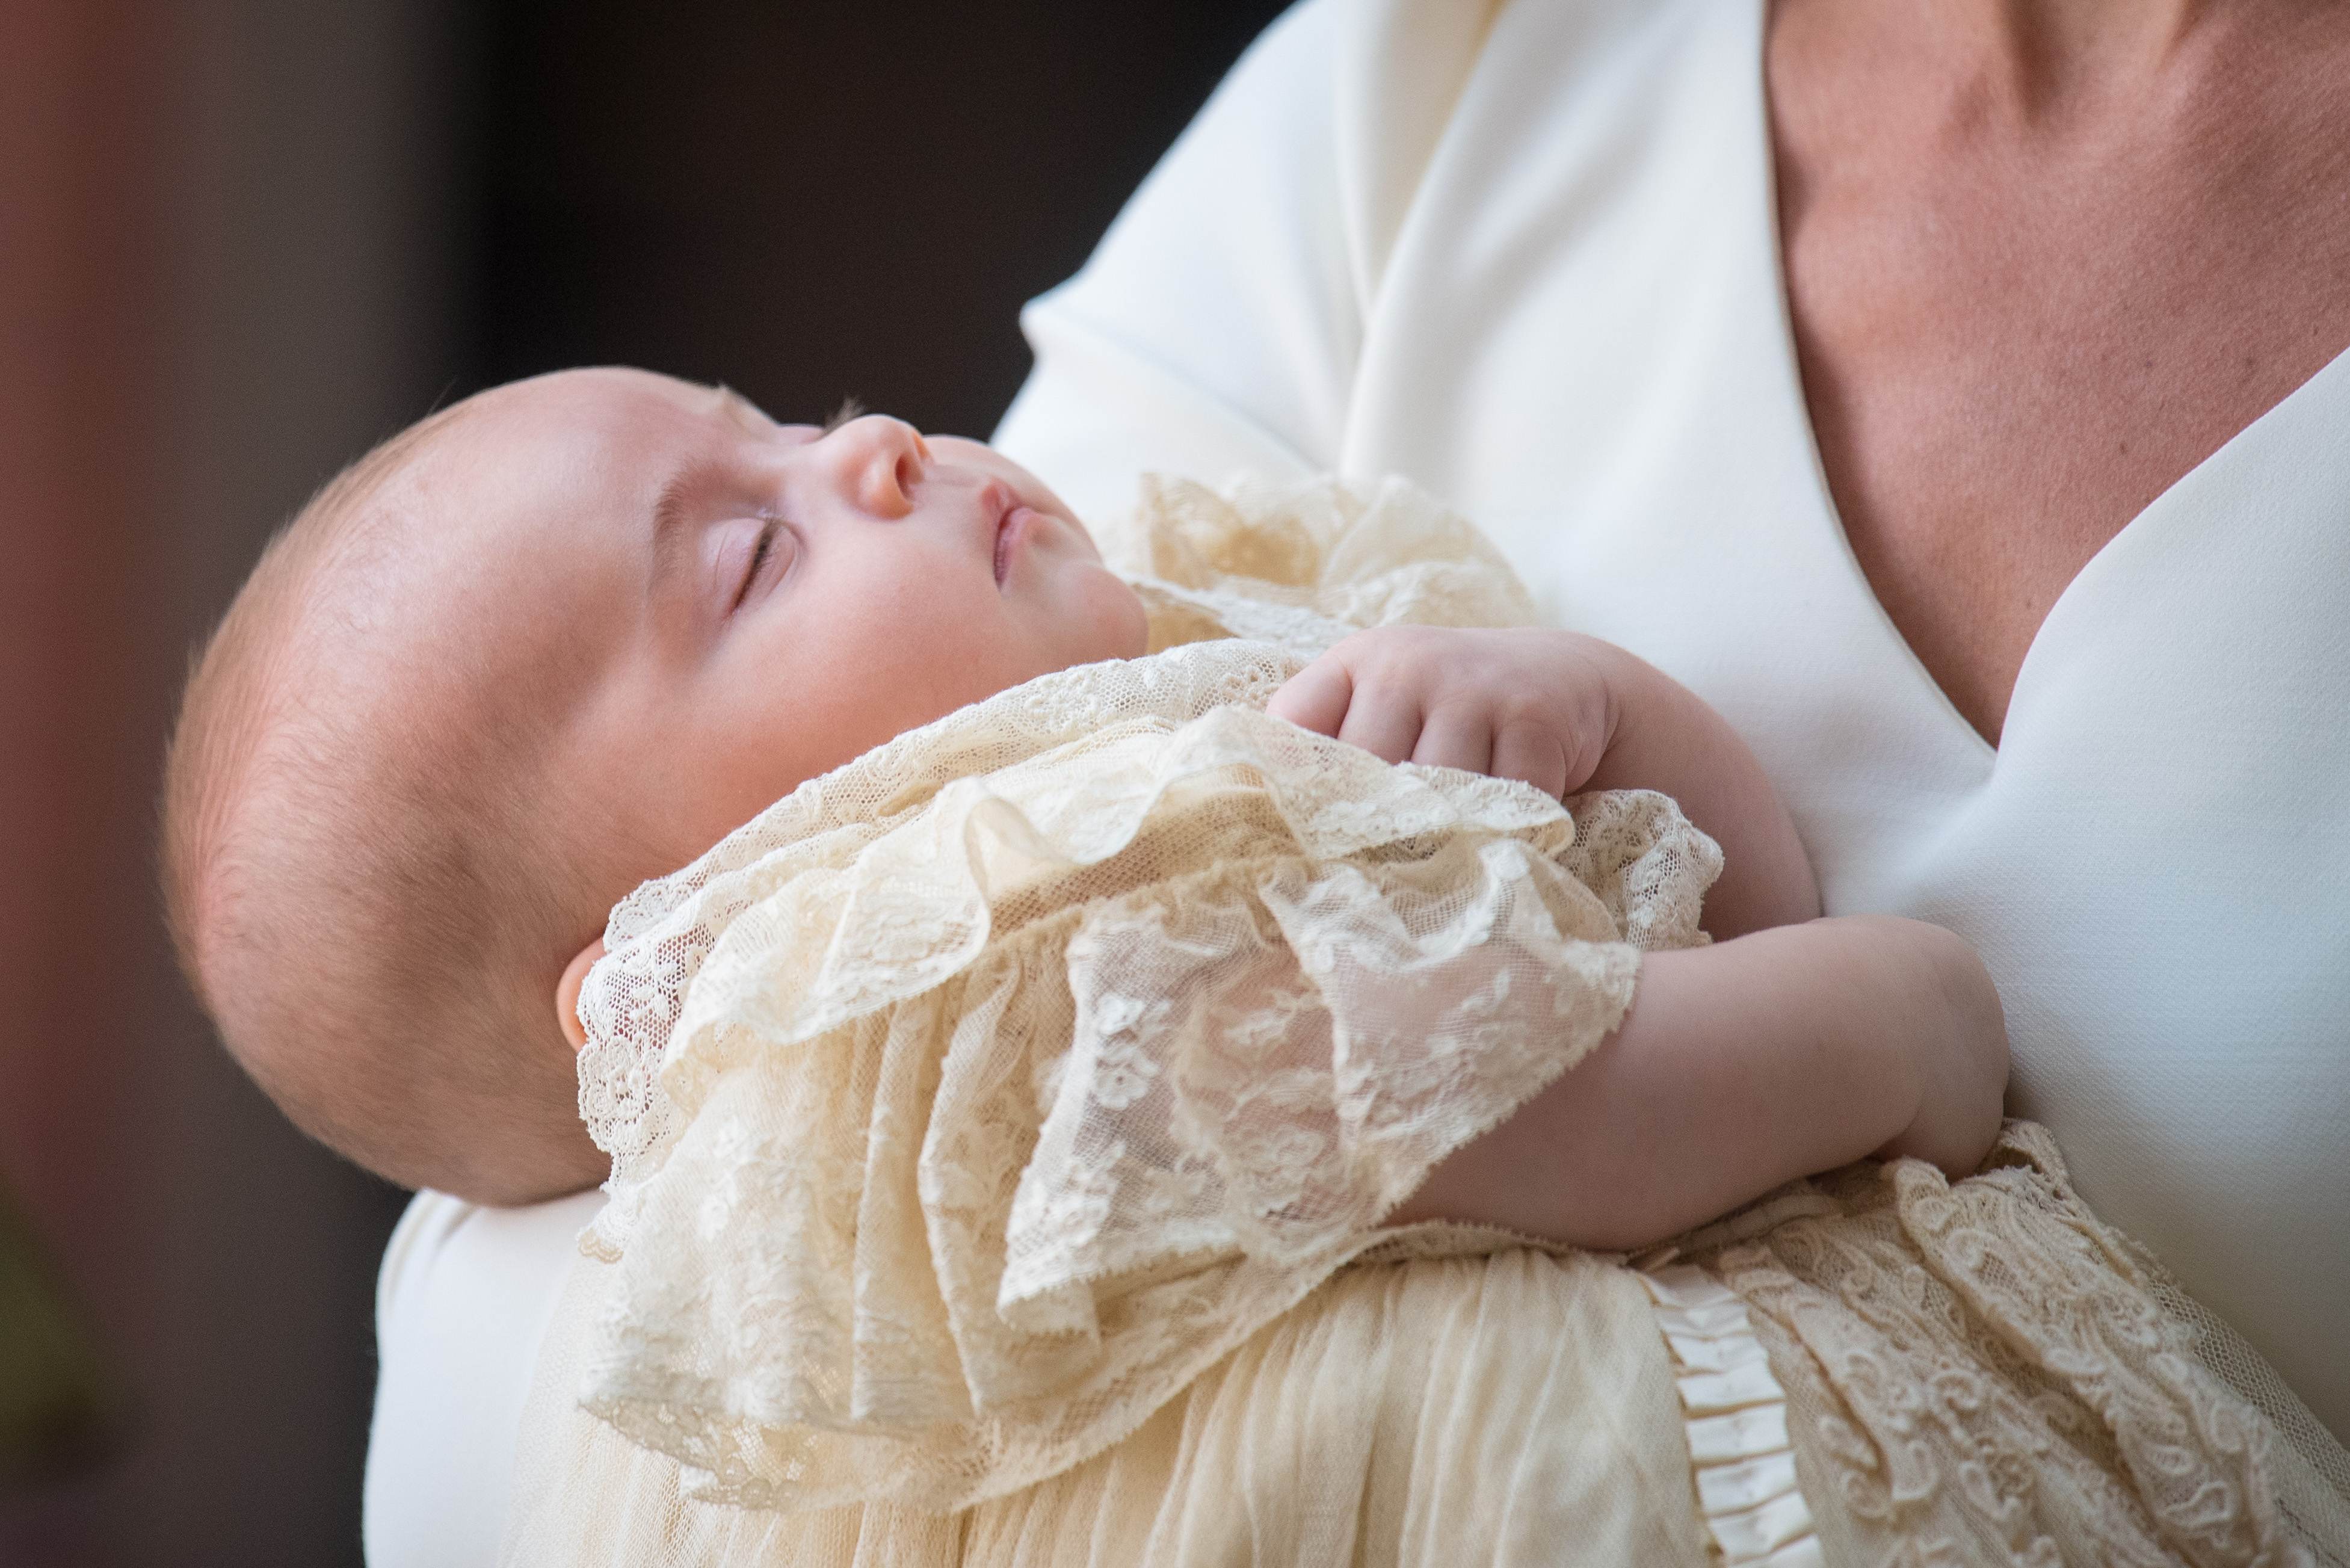 christening-of-prince-louis-of-cambridge-at-st-jamess-palace-2